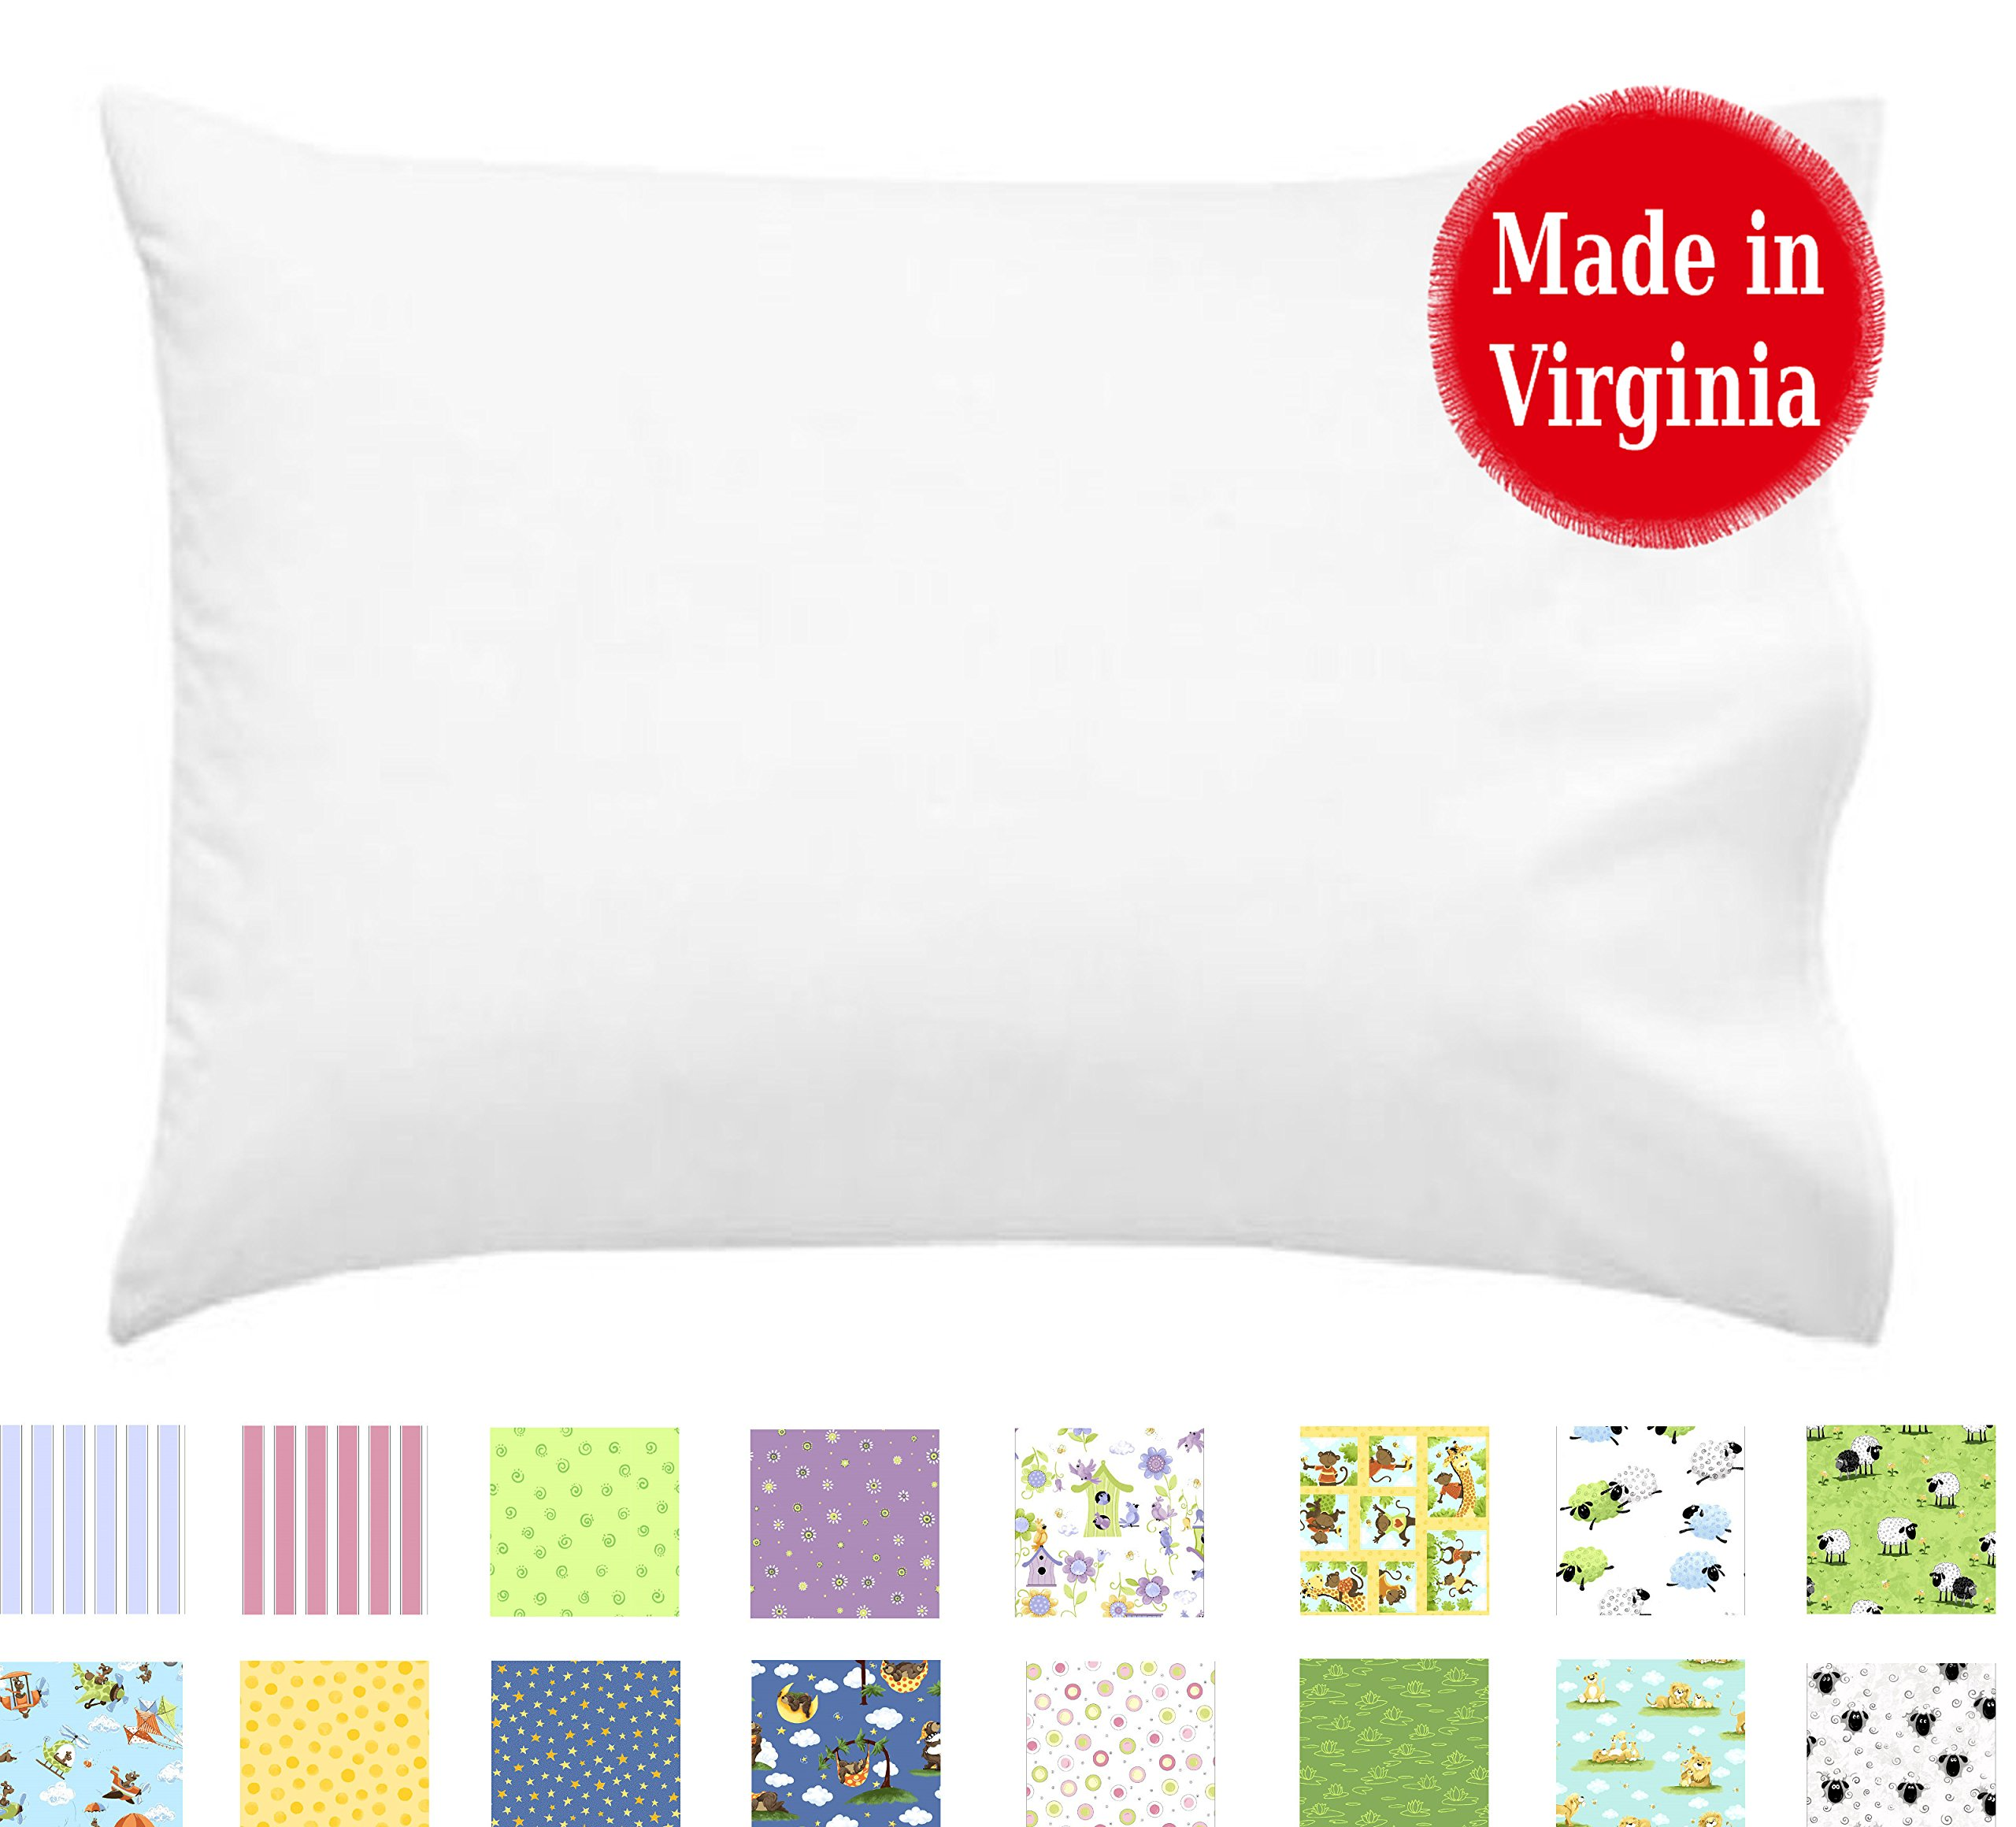 A Little Pillow Company Youth Pillowcase (17'' x 24'') 100% Cotton Percale - Regular/Open End Style - Made in Virginia by (White)